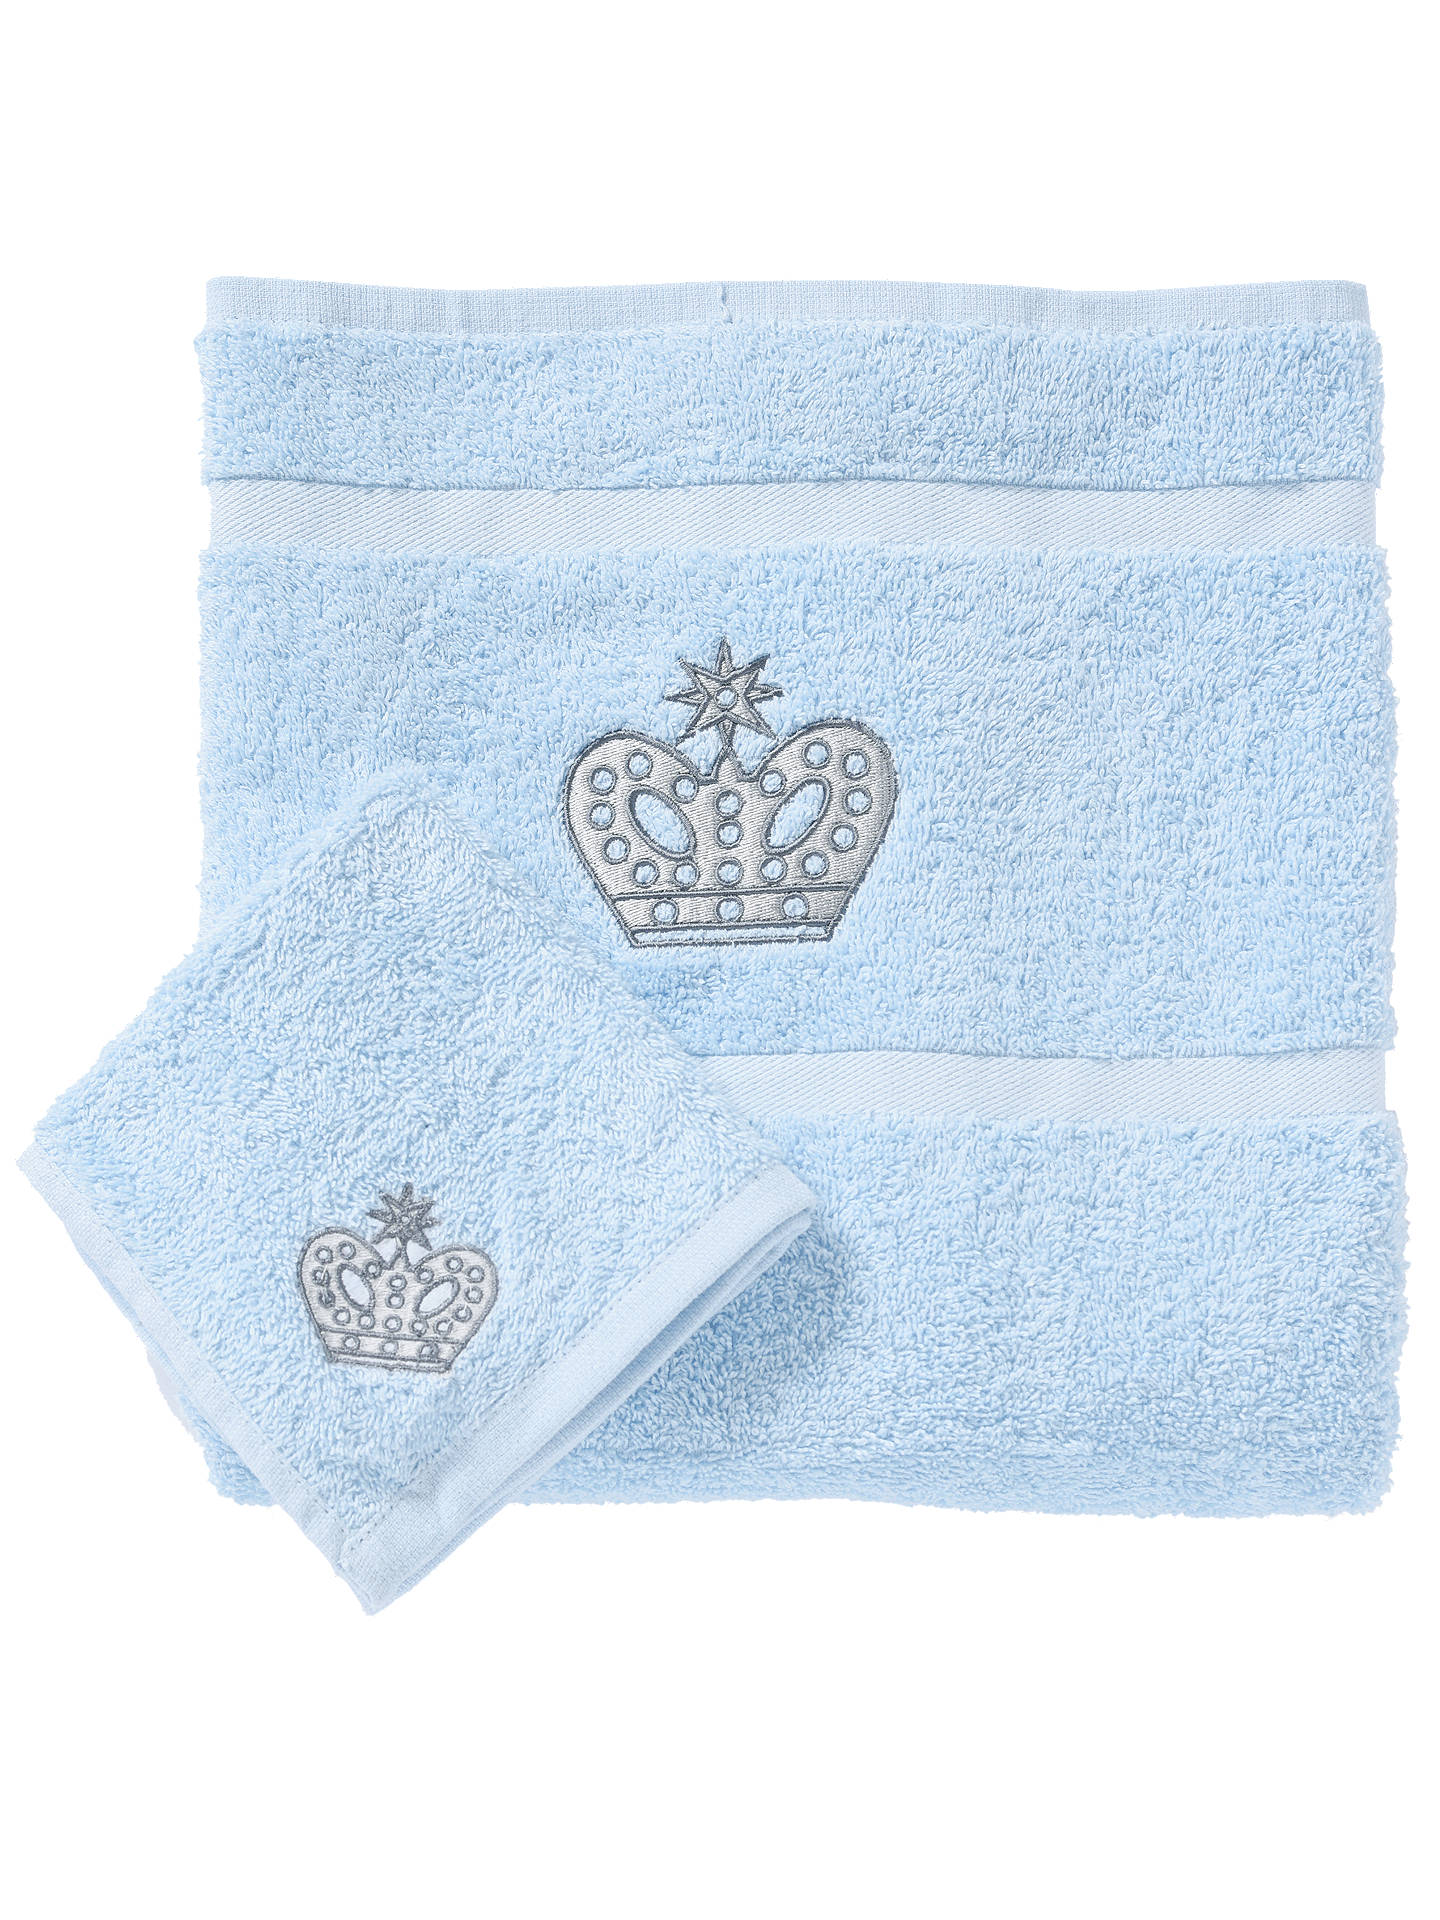 BuyRachel Riley My Little Prince Bath and Face Towel Set, Light Blue Online at johnlewis.com